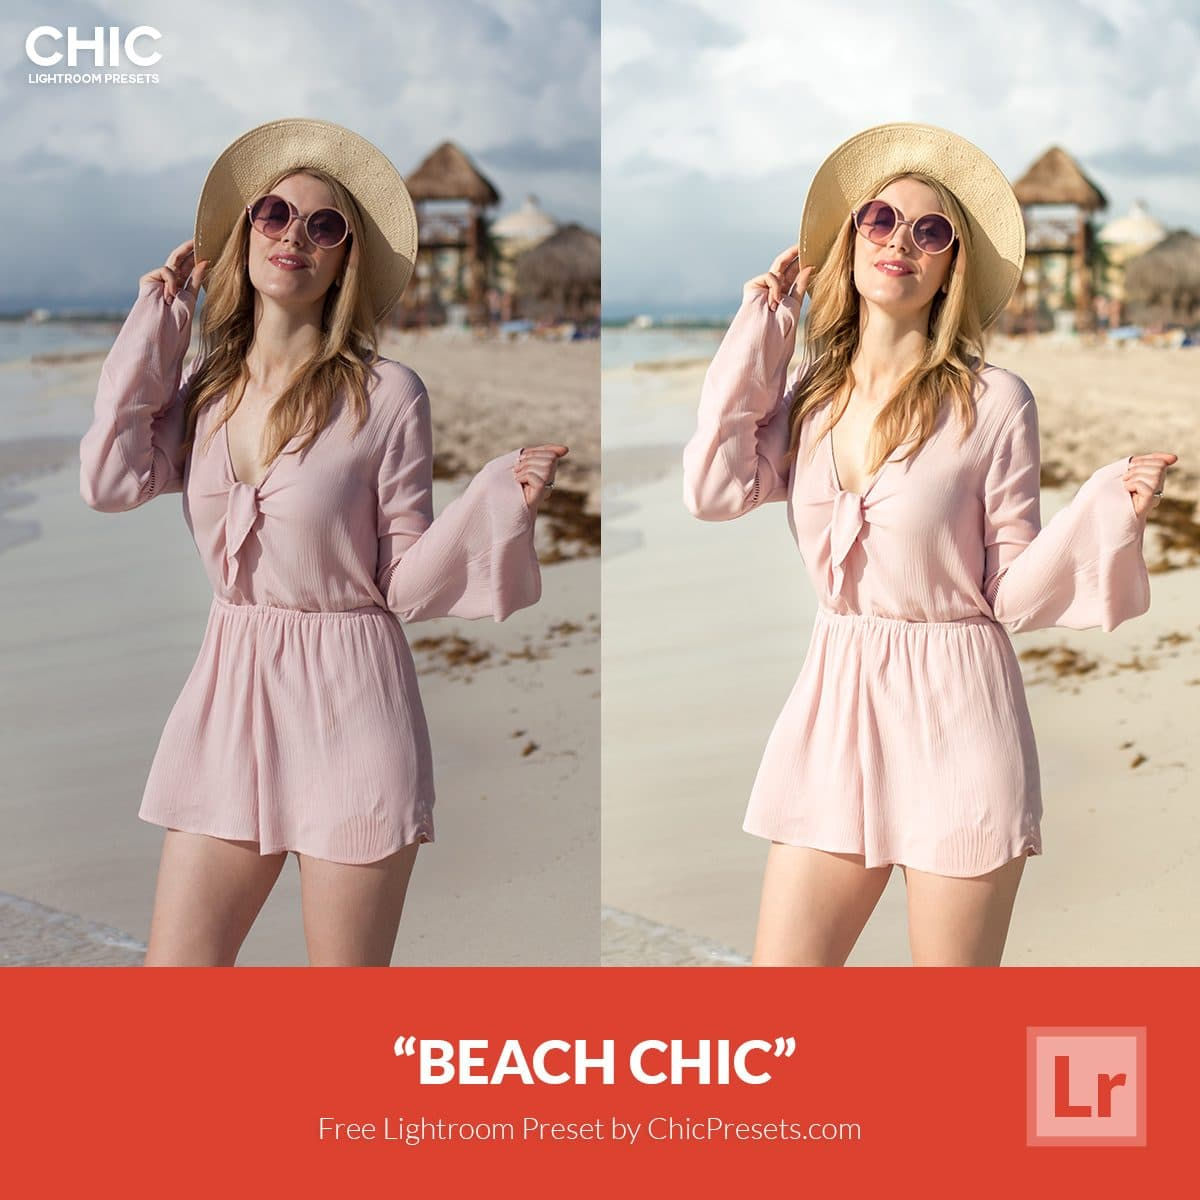 Free-Lightroom-Preset-Beach-Chic-Presetpro-and-ChicPresets.com